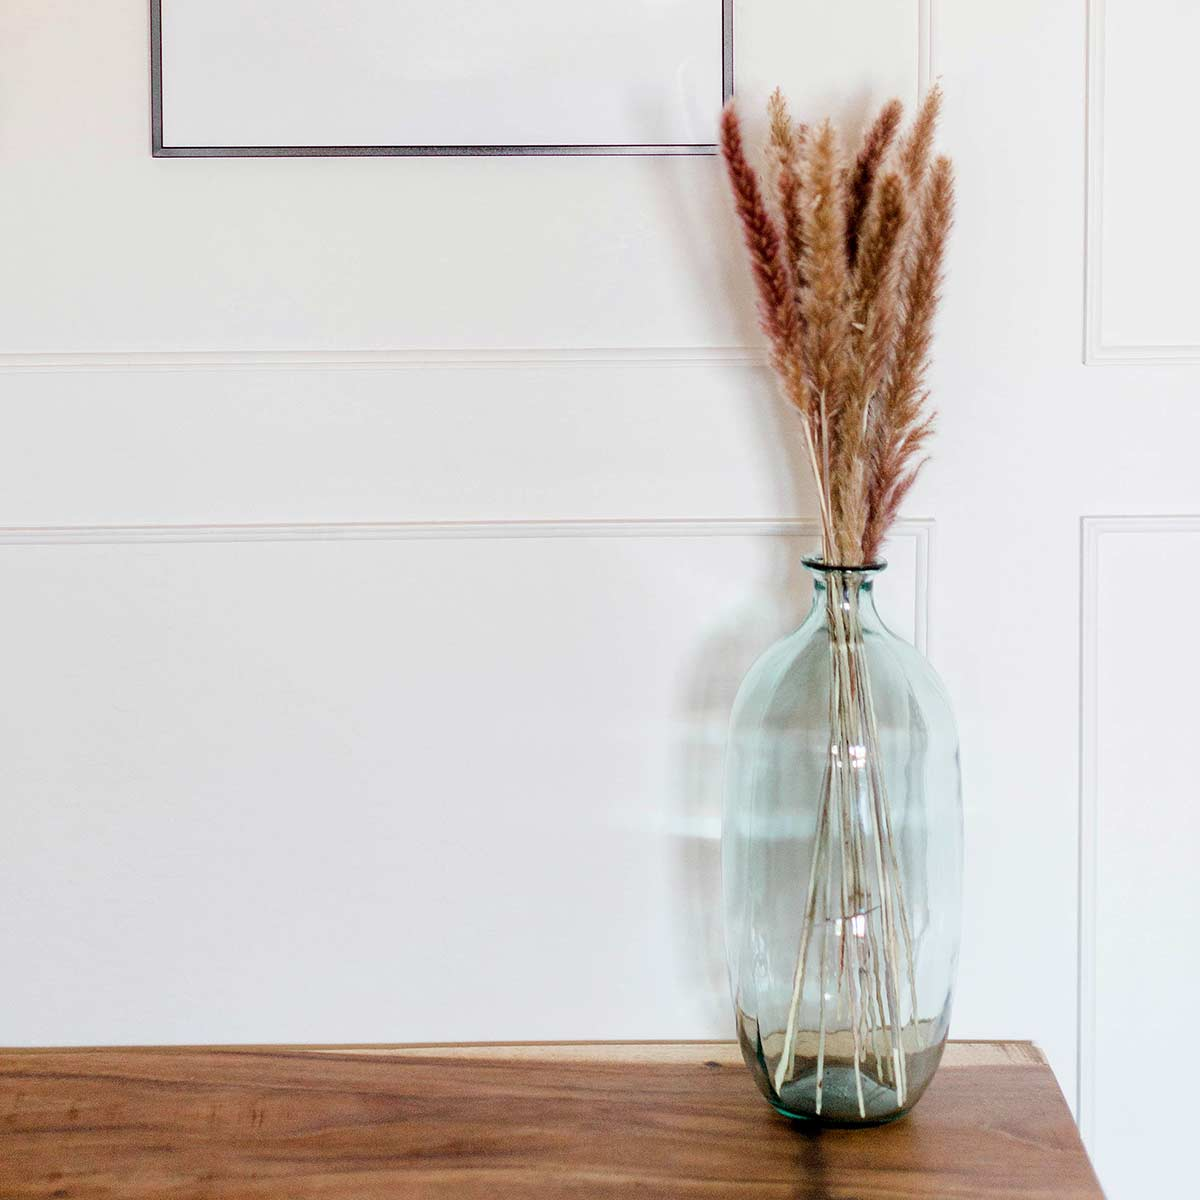 green glass vase with dried grasses on clutter-free wood table against white wall